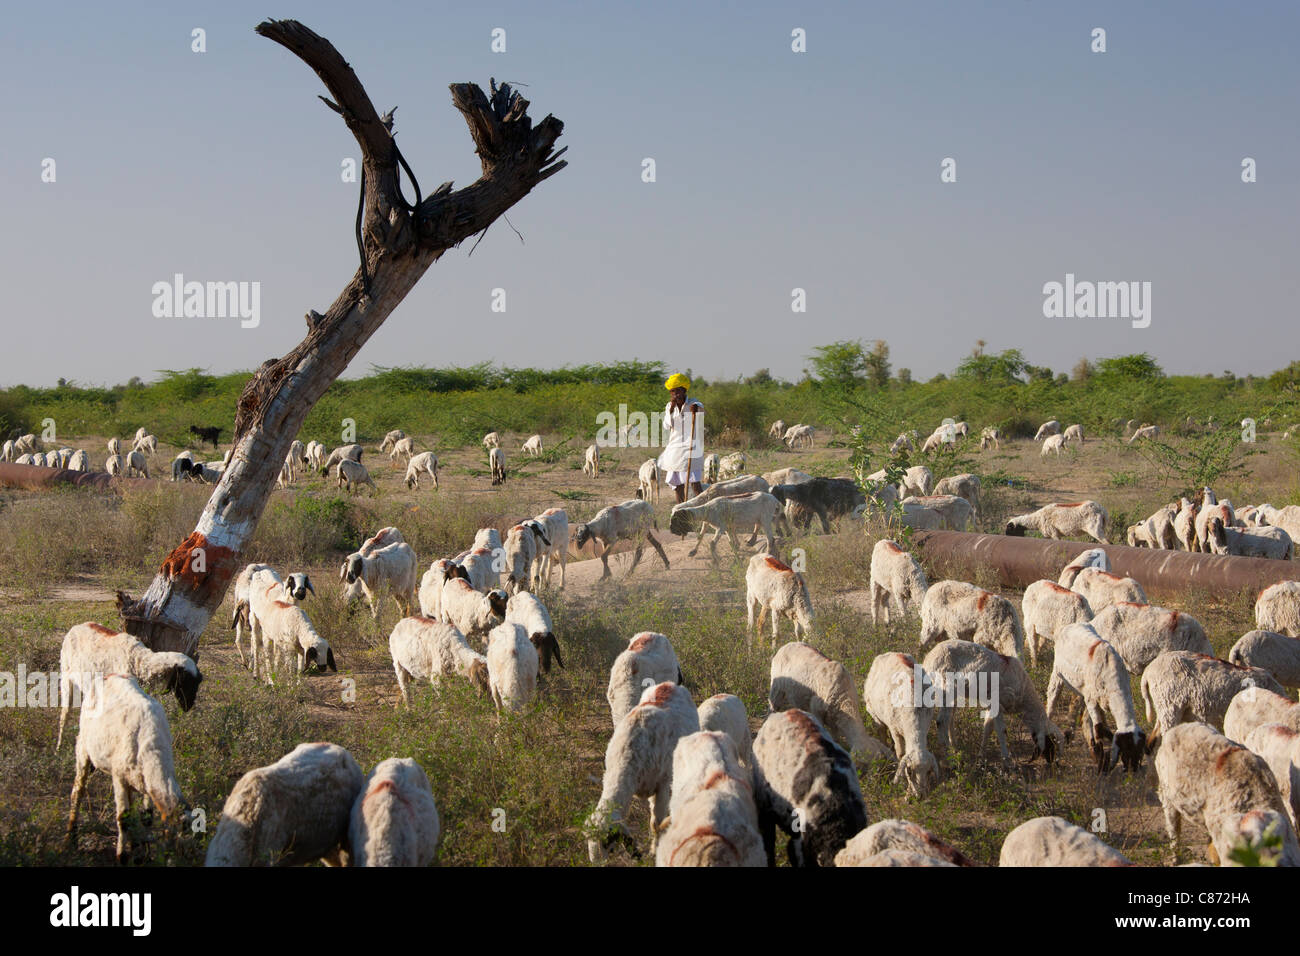 Goatherd with herd of goats in farming scene near Rohet, Rajasthan, Northern India - Stock Image